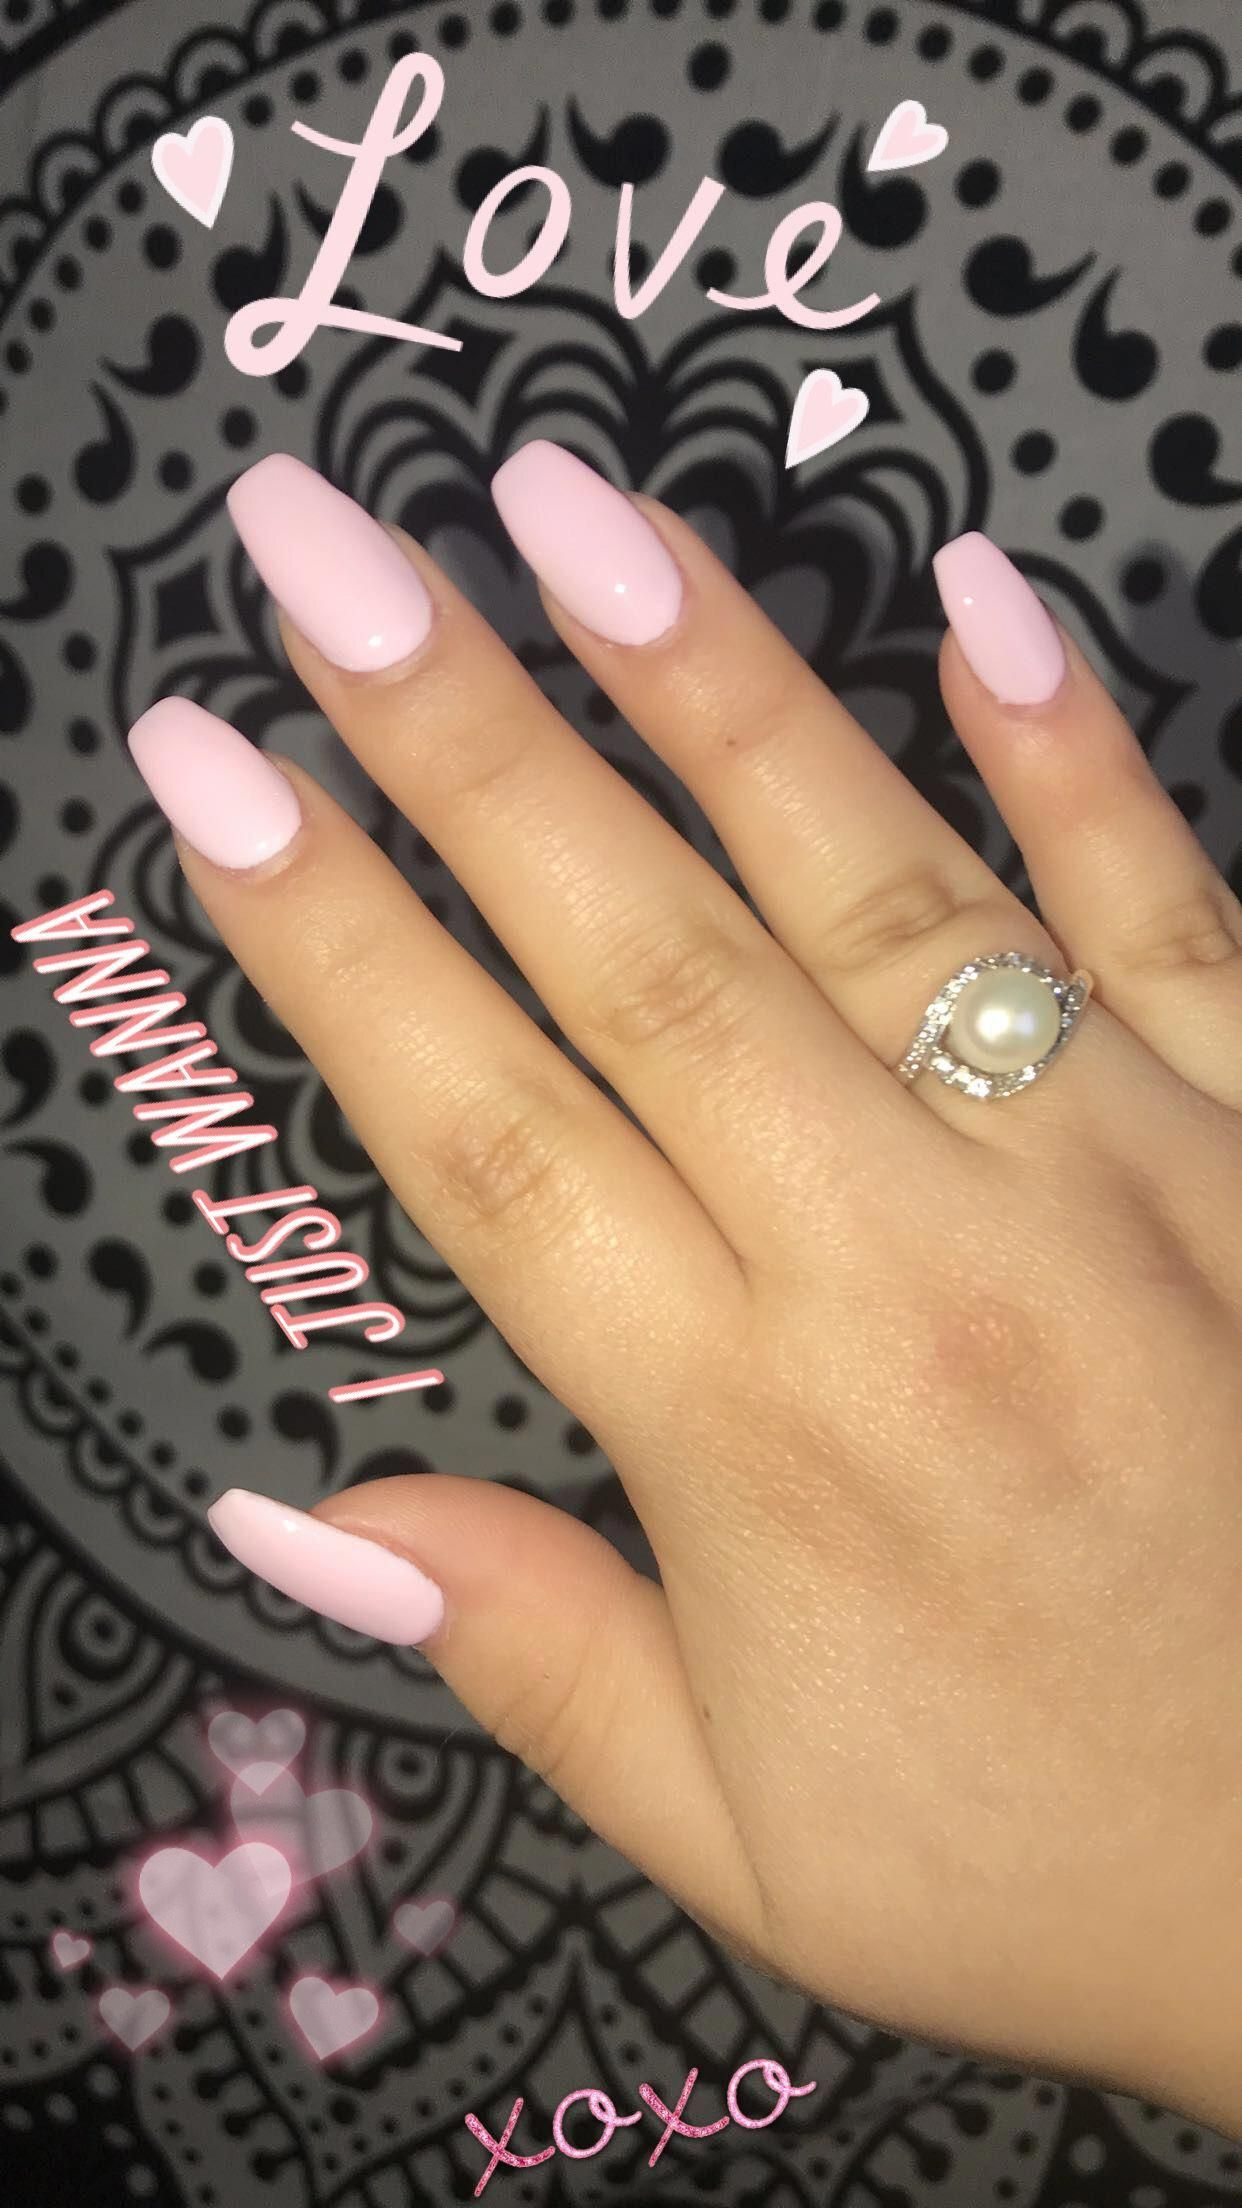 Pink Acrylic Coffin Nails Acrylicnails With Images Pink Acrylic Nails Summer Acrylic Nails Coffin Nails Designs